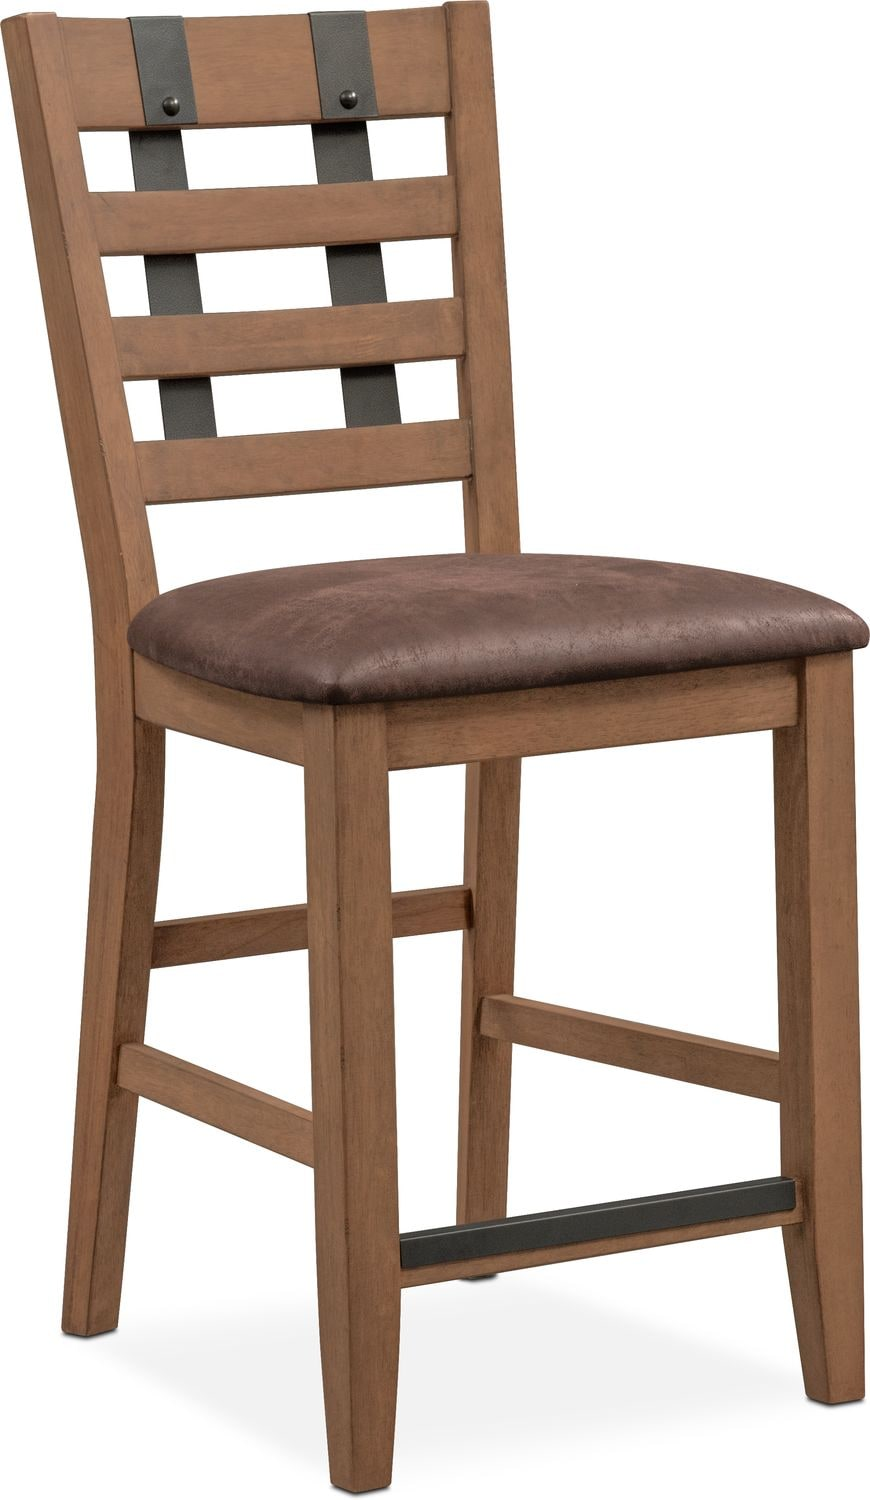 Counter Height Chairs With Arms Hampton Counter Height Stool